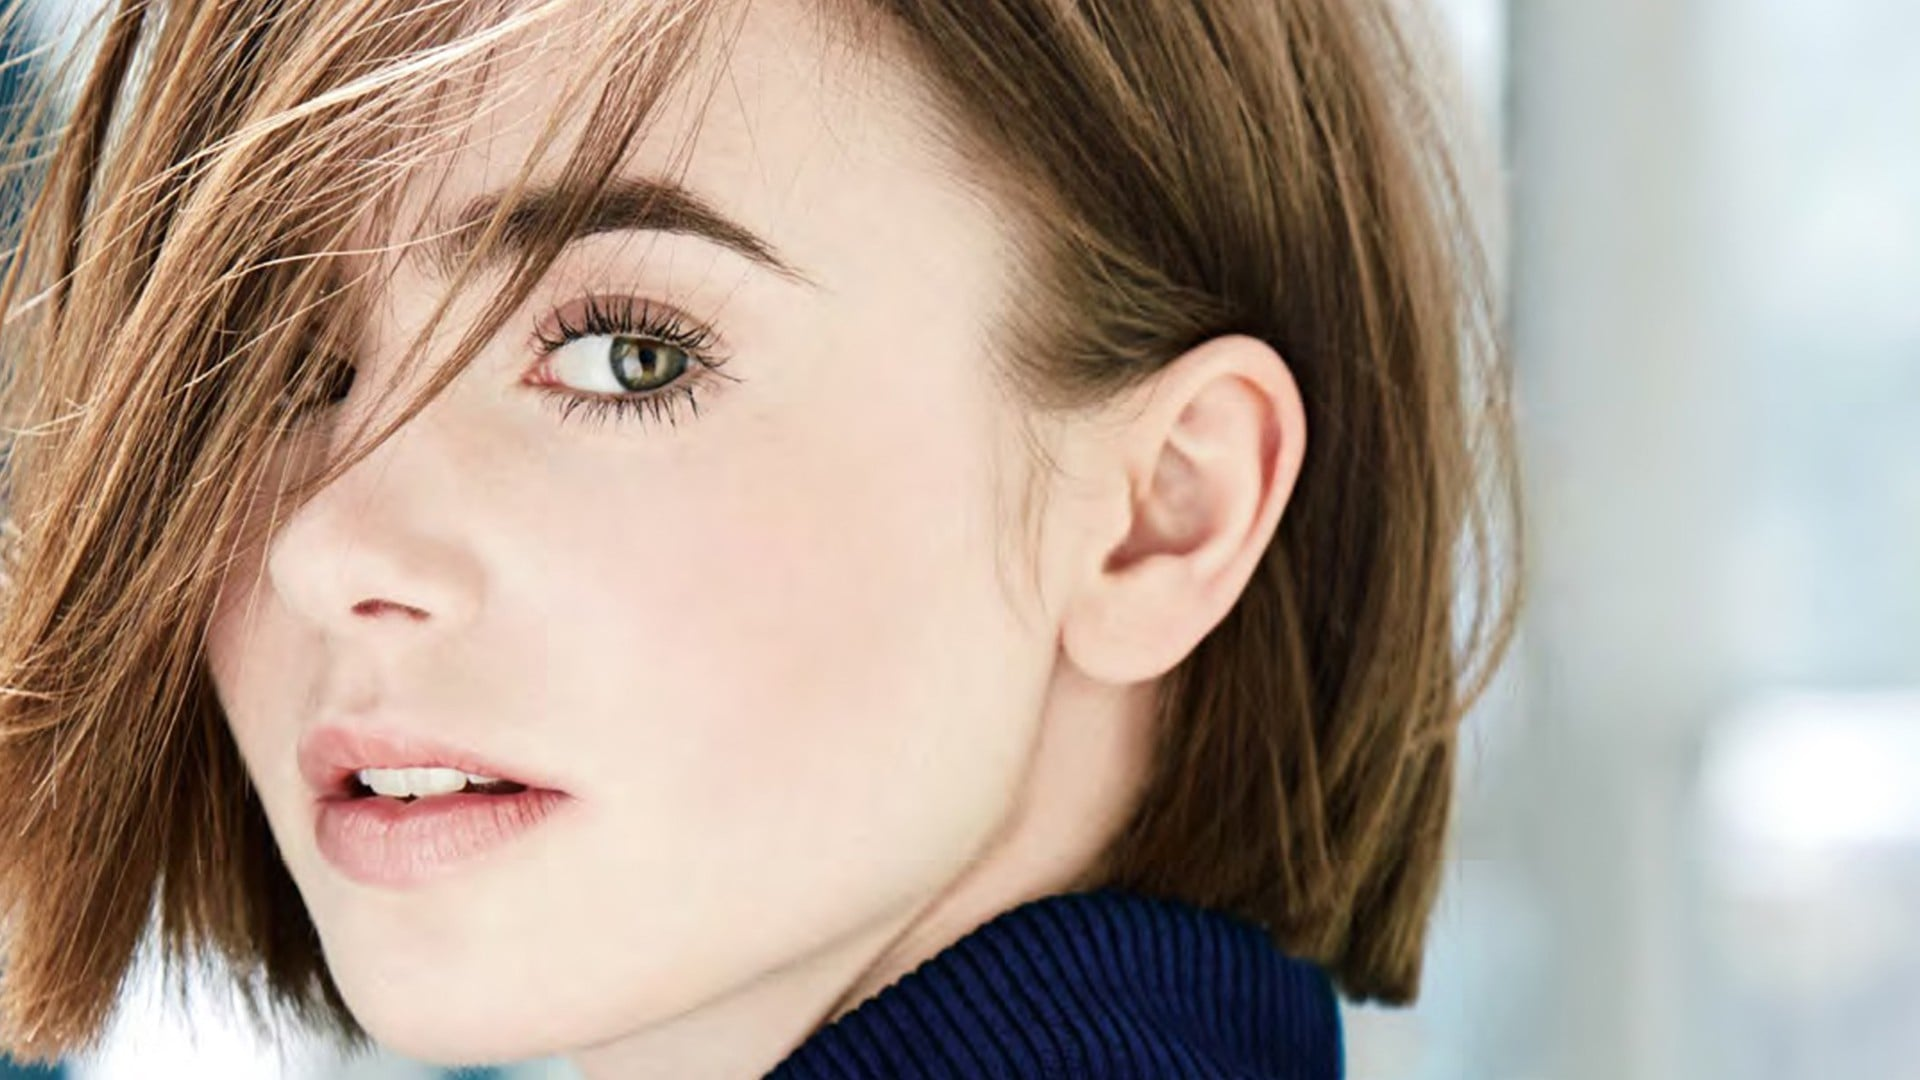 34 lily collins hd wallpapers high quality download